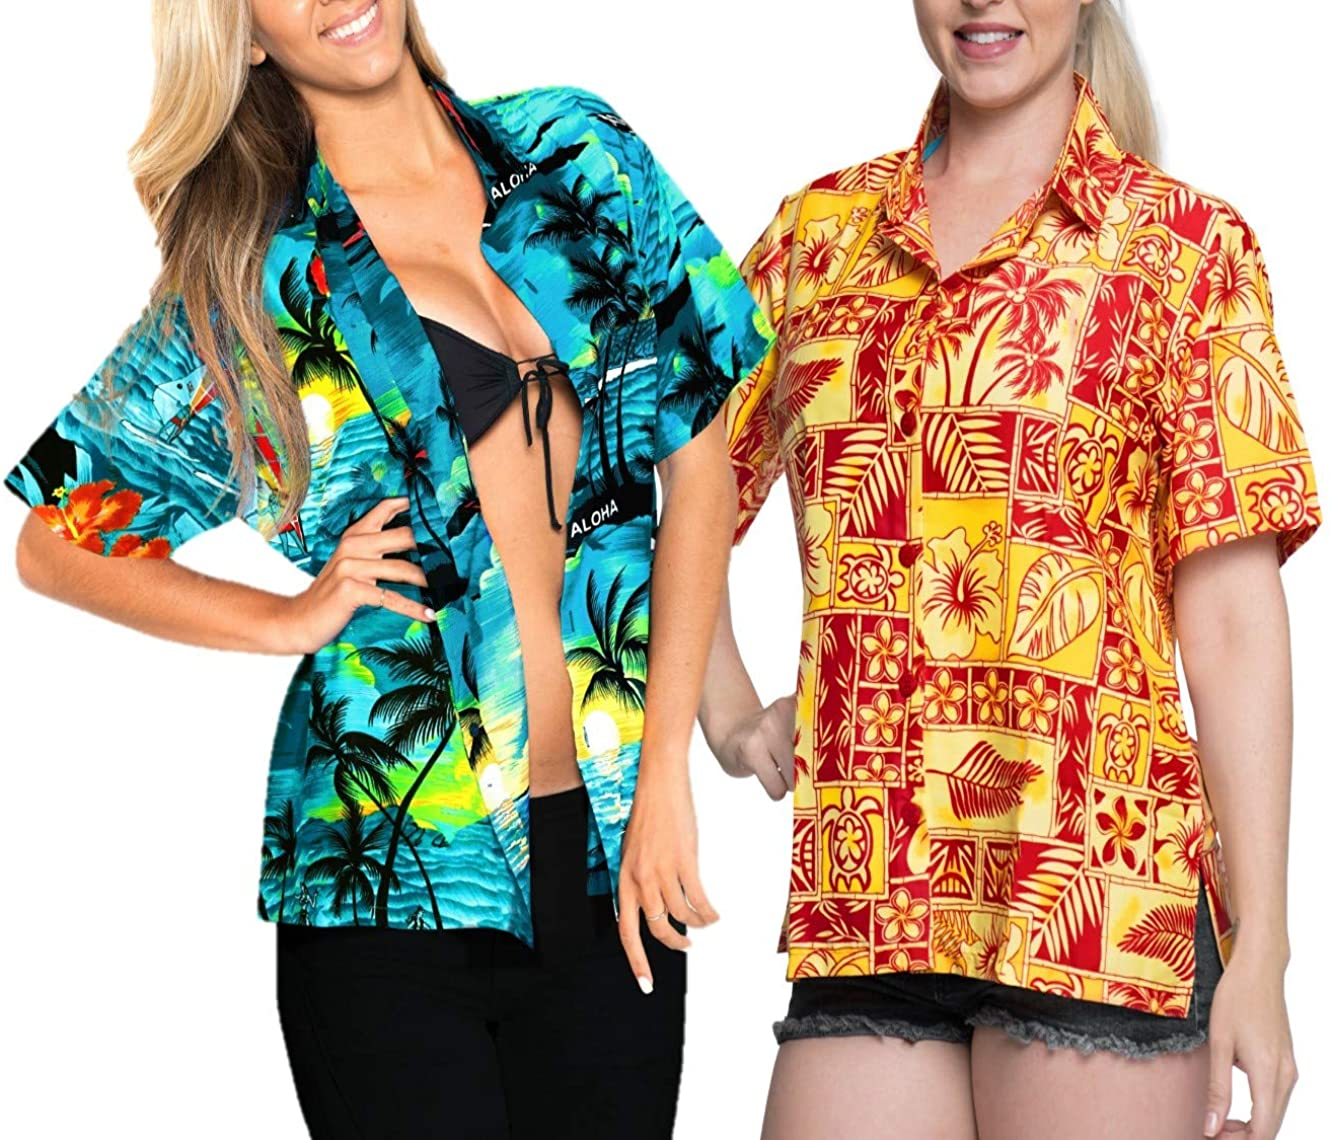 LA LEELA Women's Hawaiian Blouse Shirt Regular Fit Short Sleeve Shirt Work from Home Clothes Women Beach Shirt Blouse Shirt Combo Pack of 2 Size L